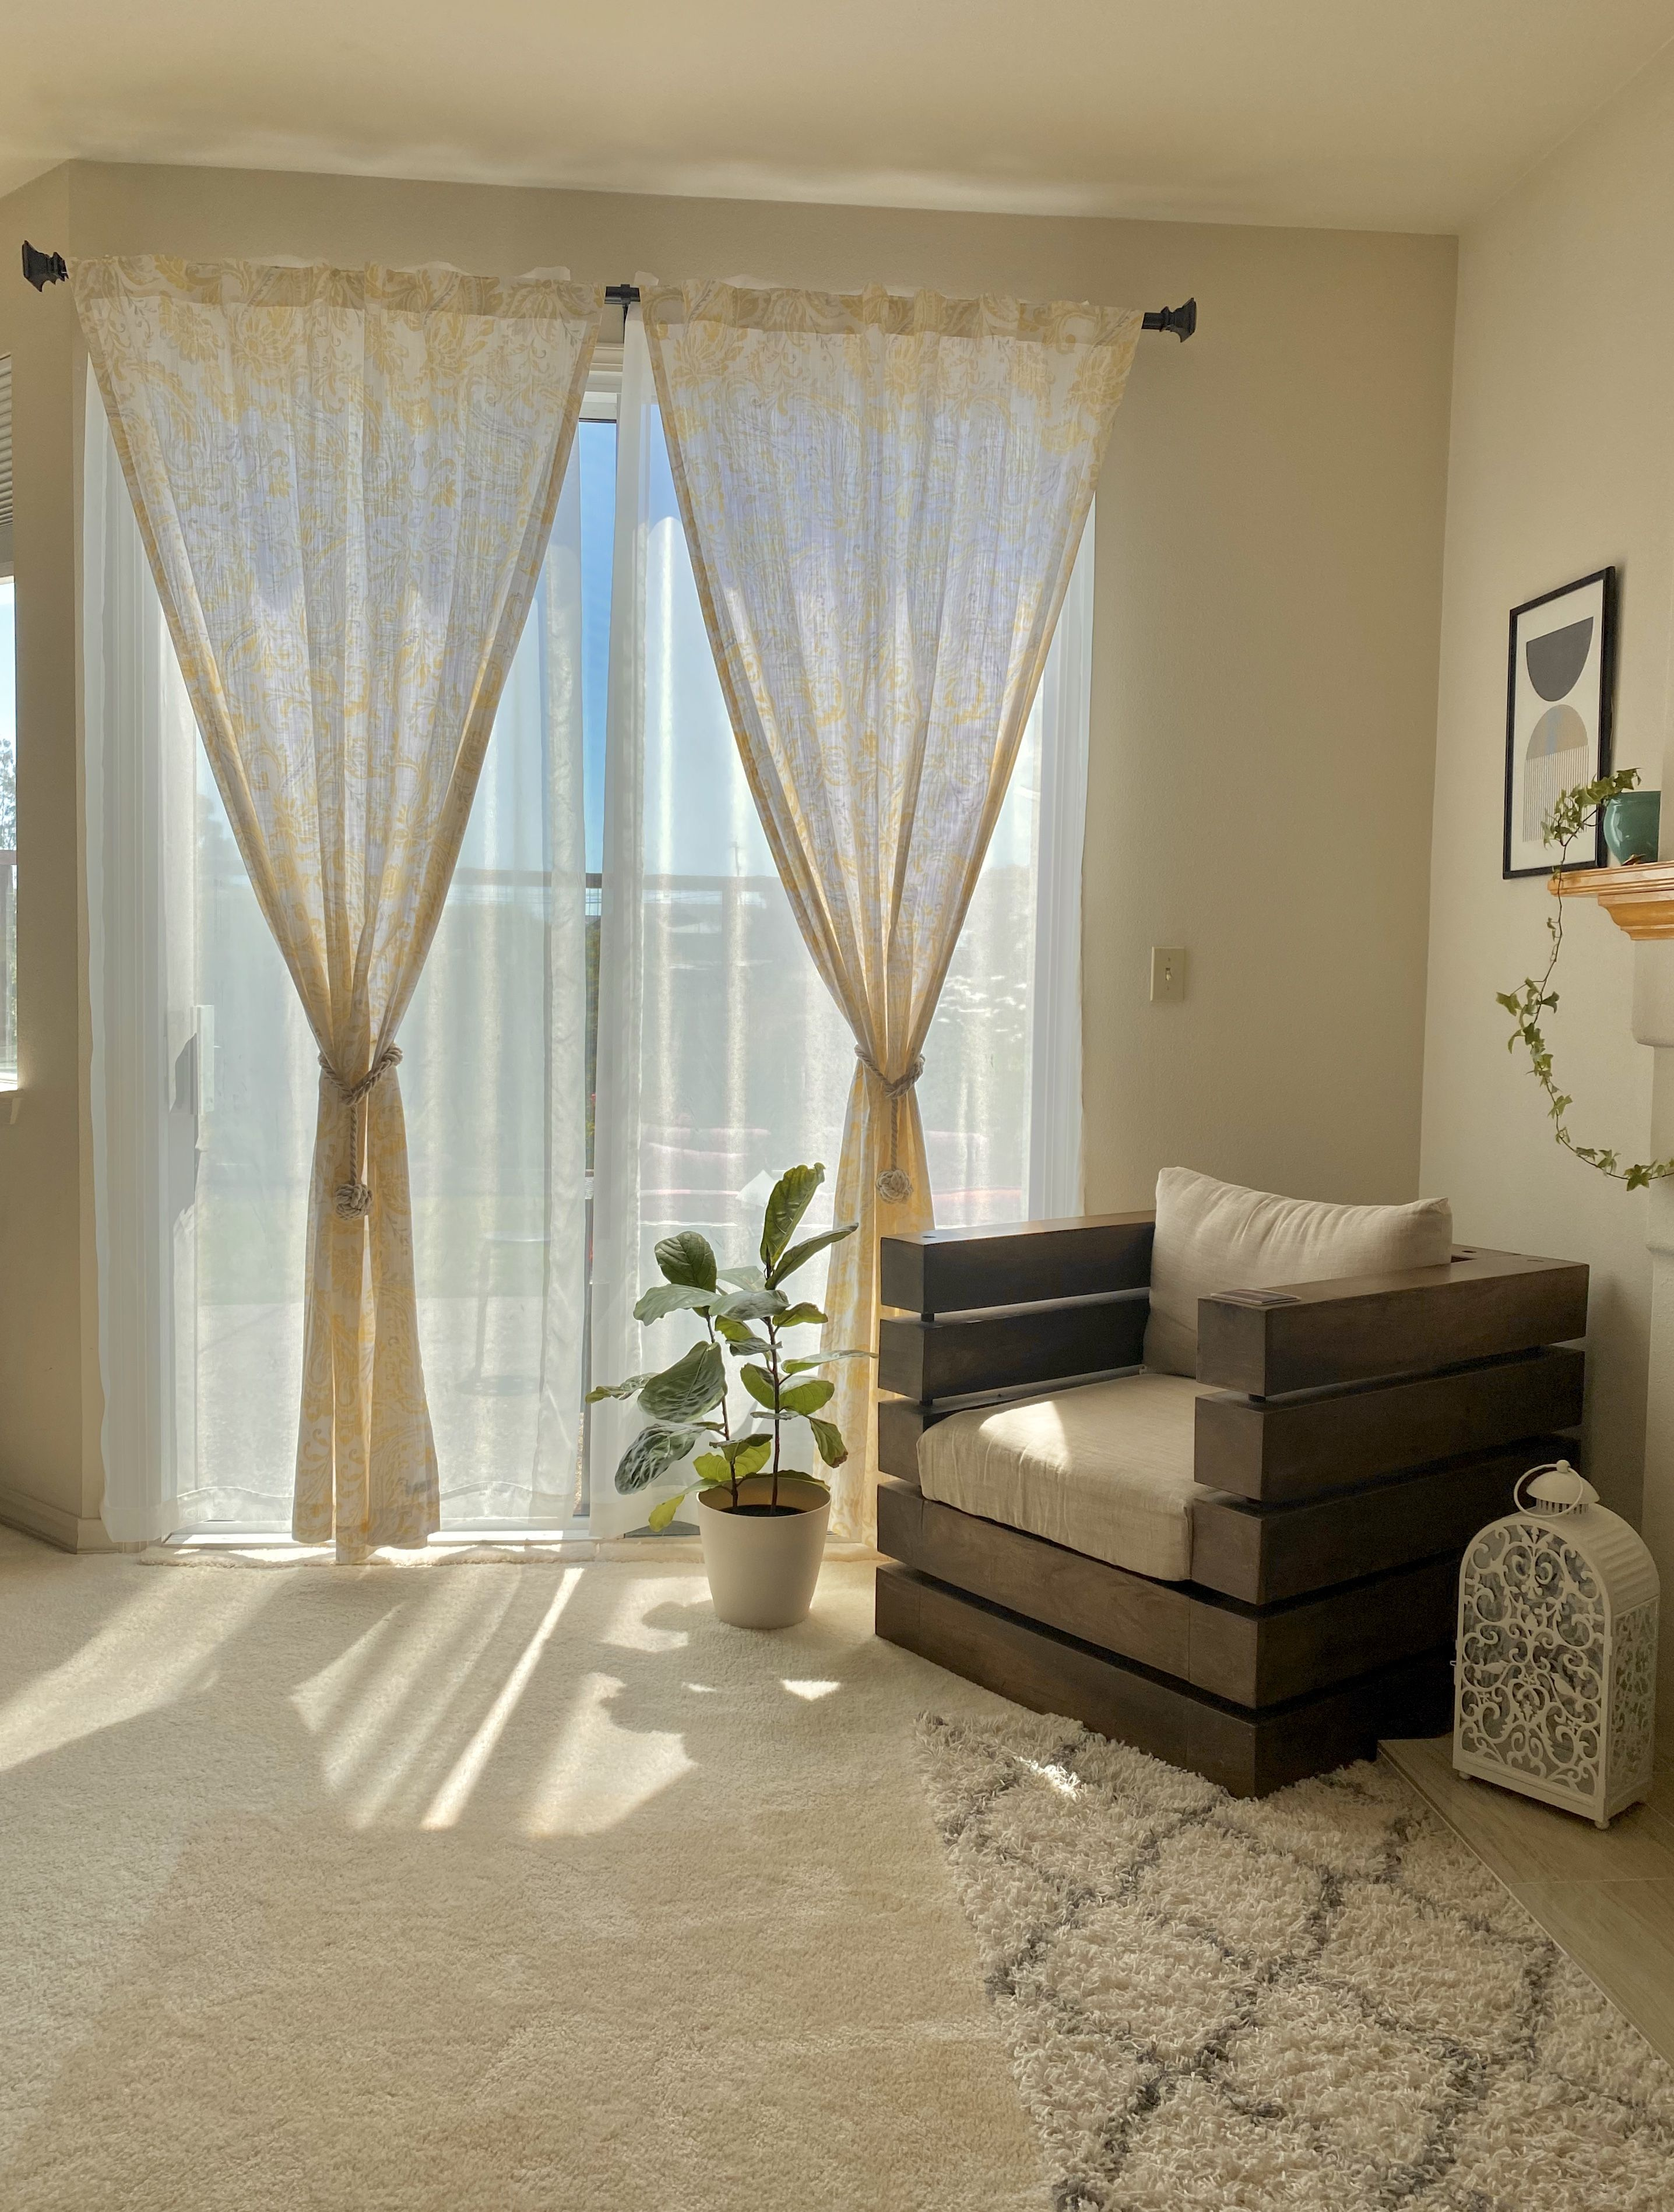 Curtains for family room / living room. How to style your curtain? Layering curtains. #doublecurtains #curtainrods #sheercurtains #curtaintiebacks #homedecorideas #homedecorationideas #homedecoronabudget